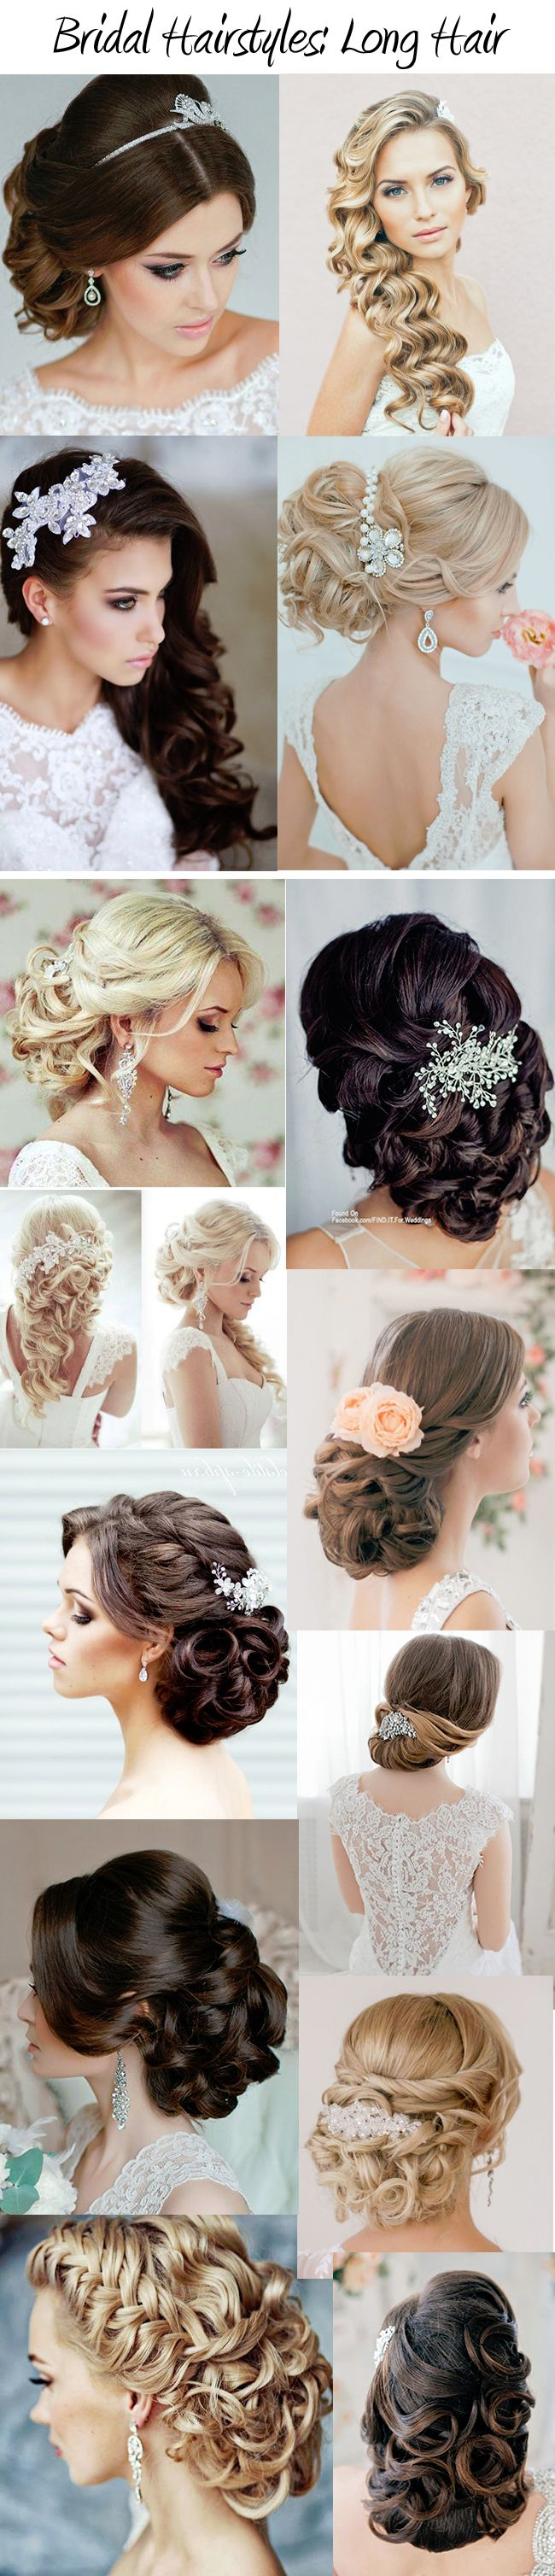 11 best The gorgeous hair style of youth 青春的发色 images on